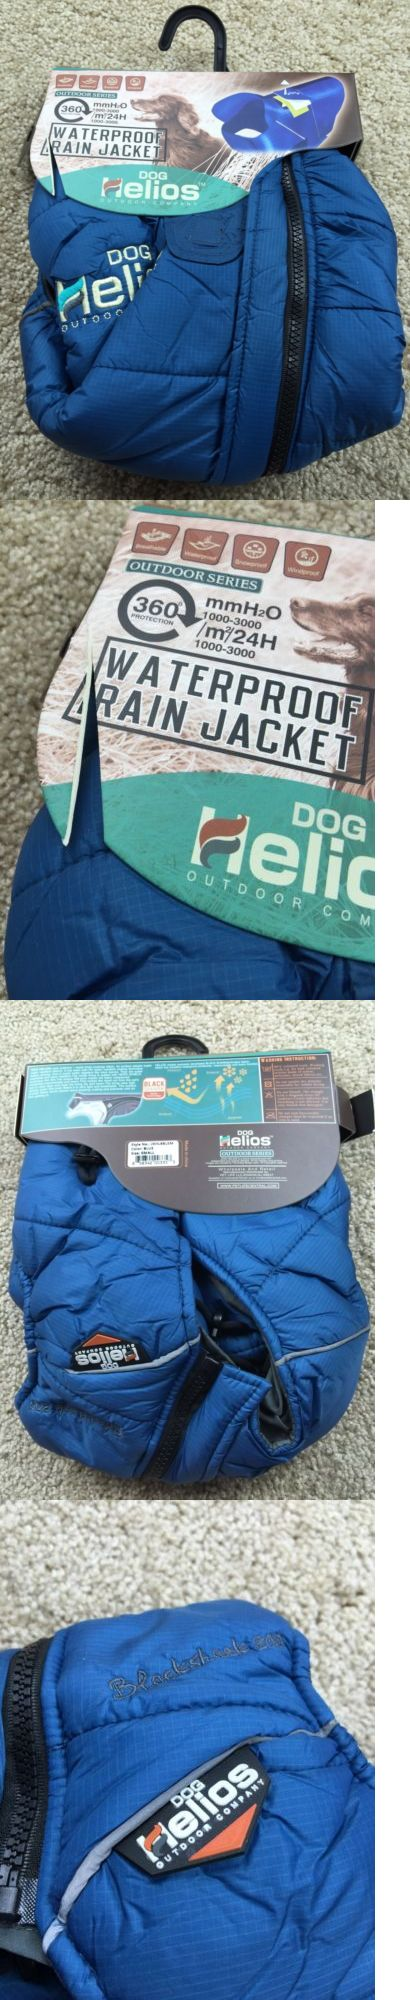 Pet Supplies: Nwt Dog Helios Outdoor Waterproof Rain Jacket Size Small Blue -> BUY IT NOW ONLY: $39.99 on eBay!